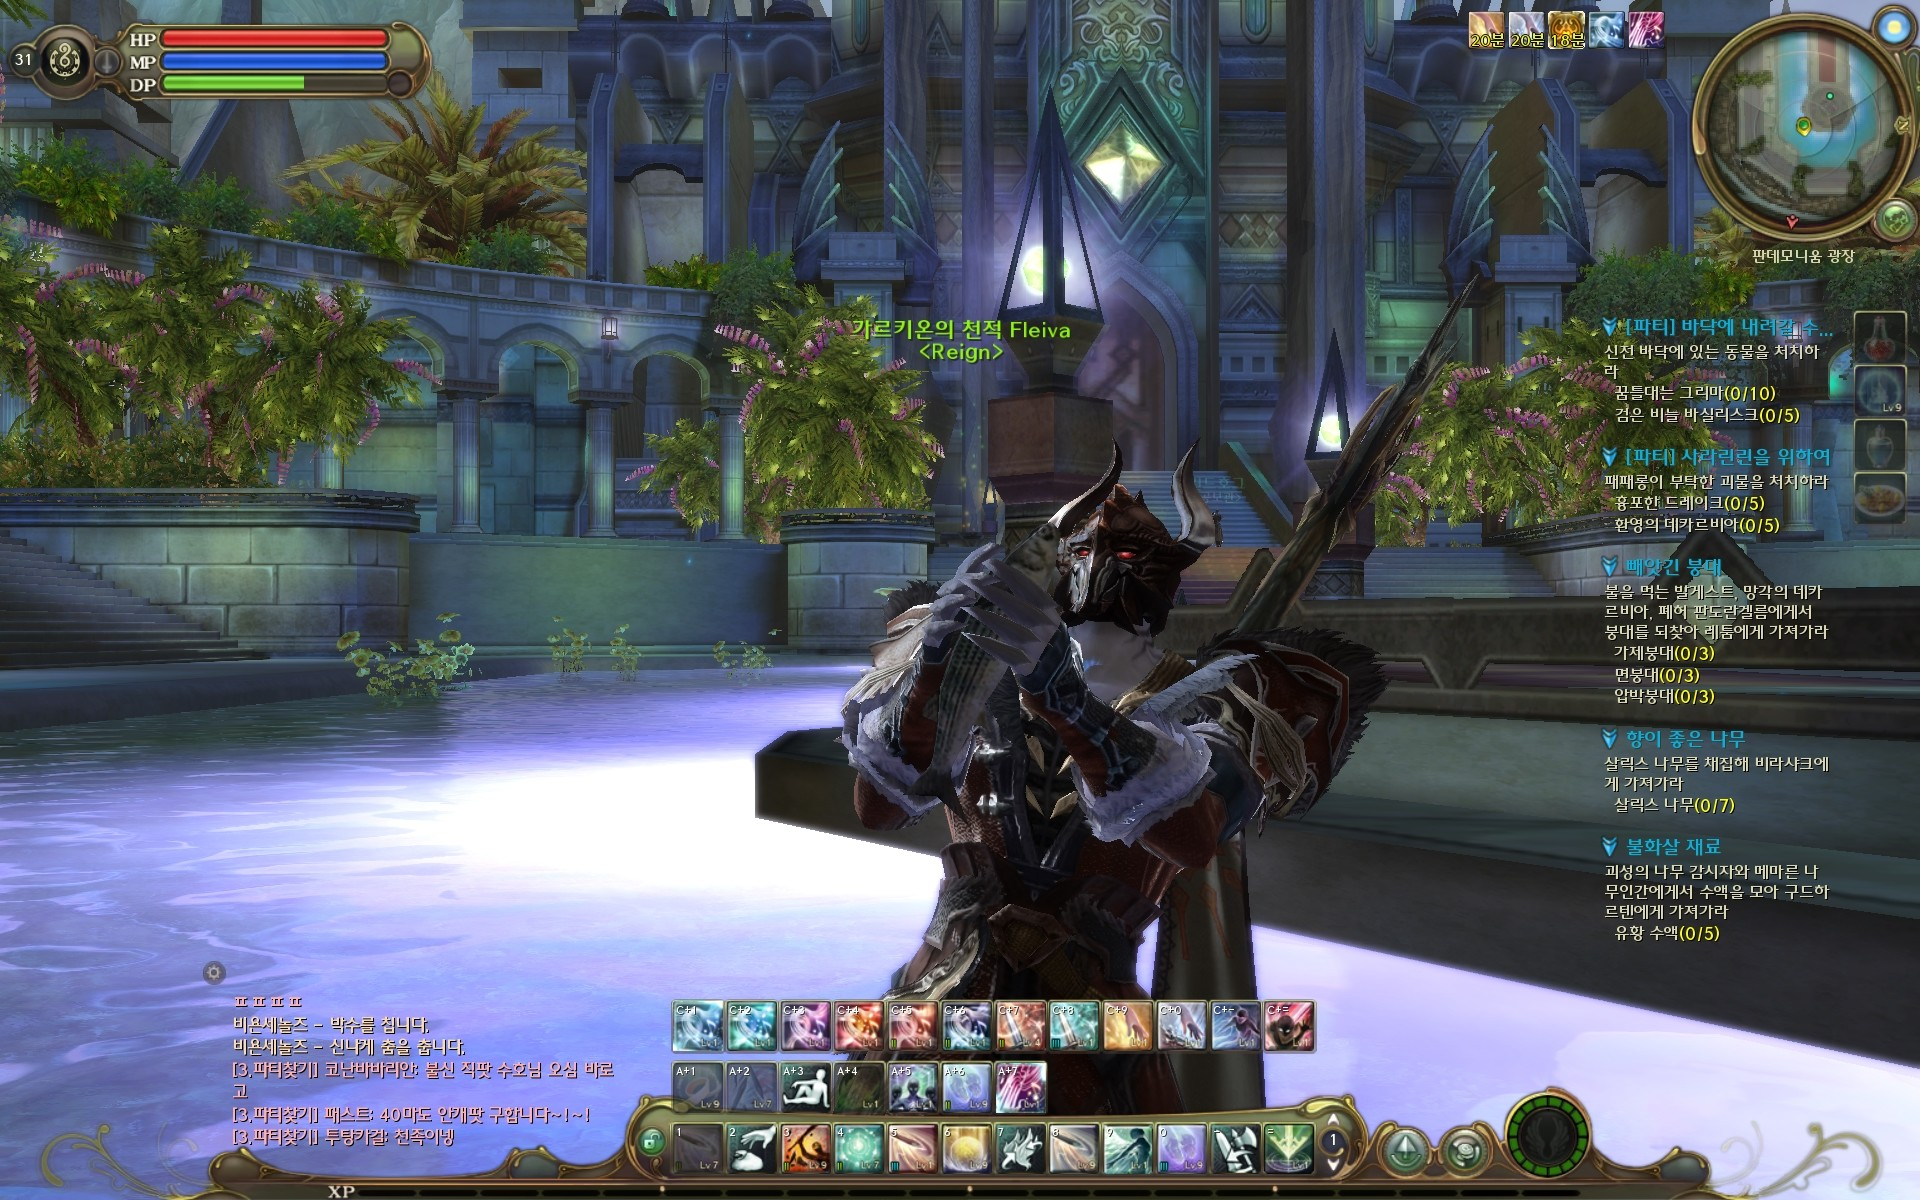 Aion - Idle animations while in water